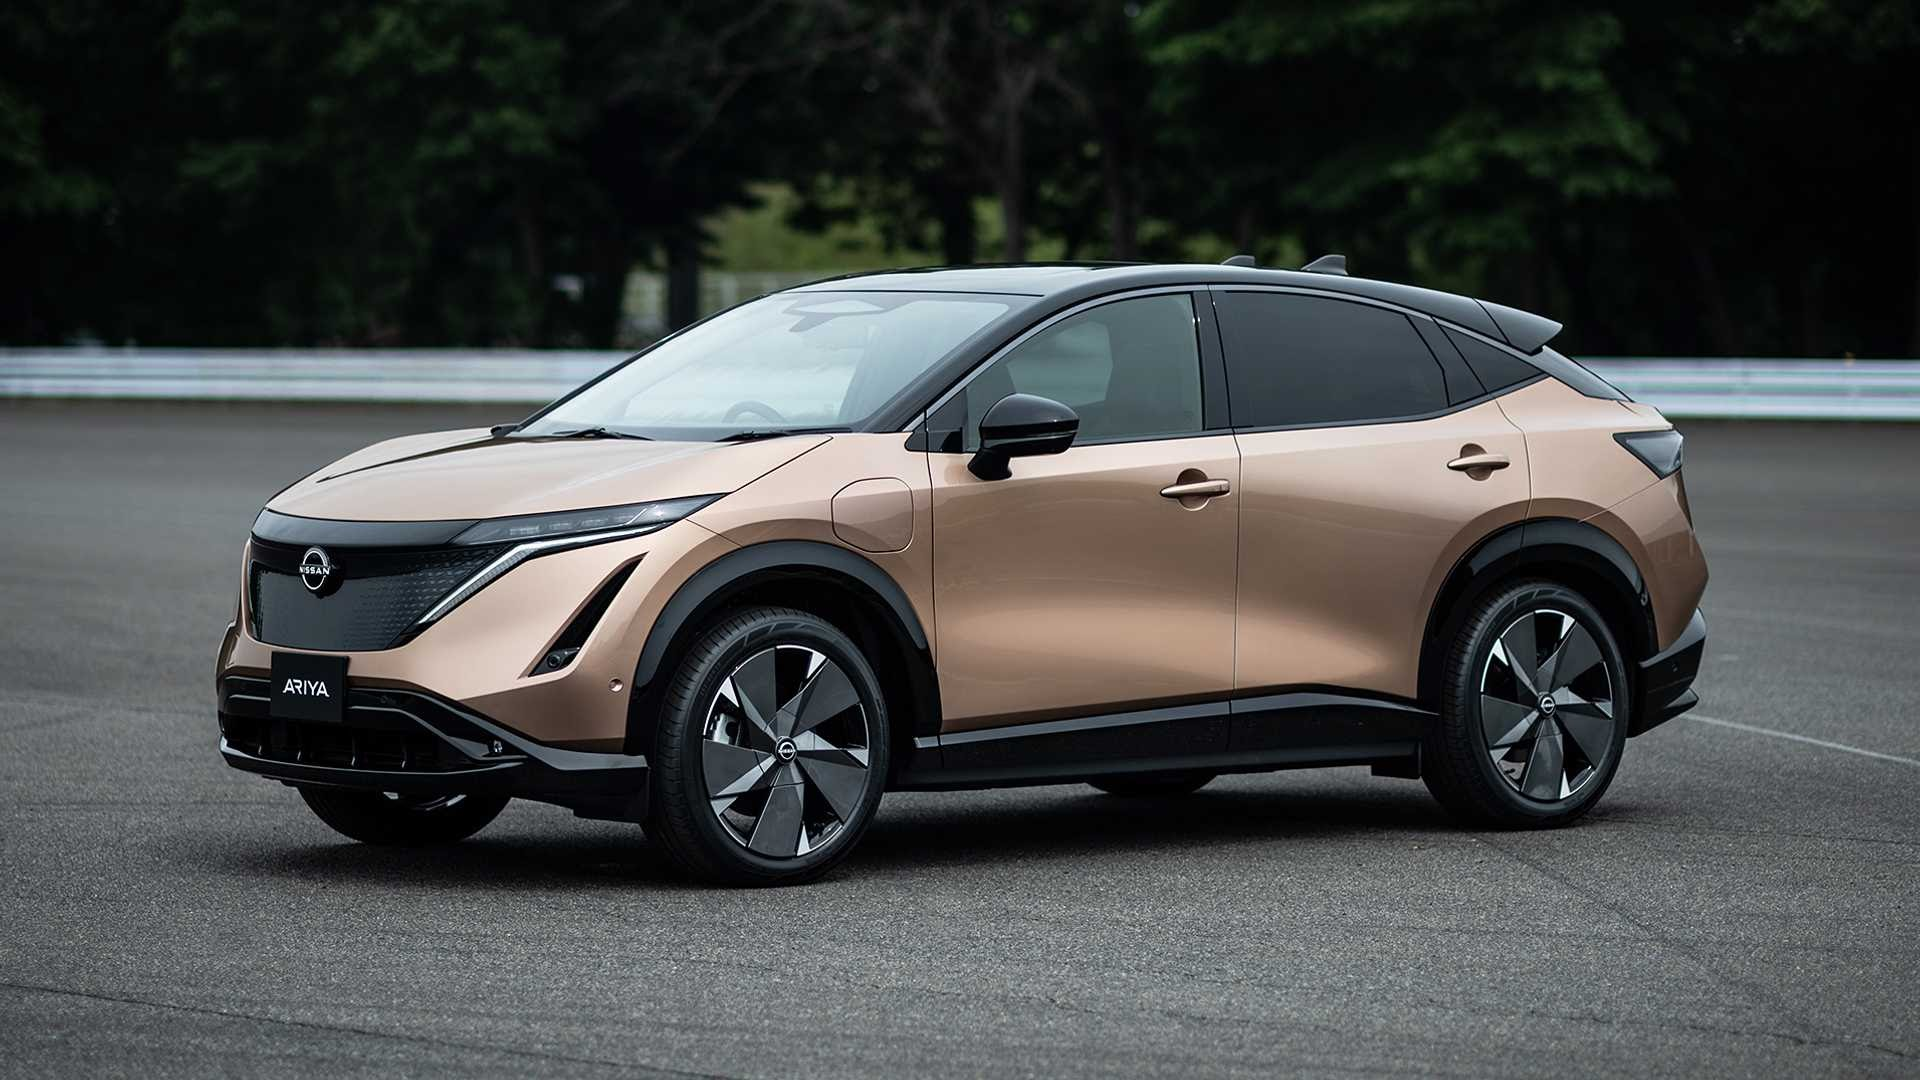 Nissan plans to sell more electric vehicles in the US by the end of this decade. In fact, the Japanese company has set a definitive target: 40 percent of its US sales will be fully electric by 2030, and even more will be electrified.  The automaker still plans to electrify all of its vehicles in key markets by the early 2030s, with a goal of becoming carbon neutral across Nissan's operations and products by 2050.    Ariya will be sold in conjunction with the LEAF in 2022 as part of Nissan's push to bring this about. Depending on the battery pack and drivetrain, the Ariya's range can be as much as 300 miles (483 kilometers) in the United States, though it depends on the version with AWD. Approximately $45,000 is the starting price of the Nissan Ariya.    Nissan's press release mentioned more electric models would follow the Ariya. We have yet to see any new all-electric Nissan looming as of this writing, though a larger crossover to replace the Ariya is speculated to be in the works. Within a few years, we are likely to hear about a new model.    With the 2022 model year approaching, Nissan is already thinking about aggressively selling LEAFs in the US. The Nissan LEAF was recently subjected to a major price cut bringing its price down to under $21,000 after tax credits at the beginning of this month. LEAFs are also available for a low $89 per month lease deal in some areas of the United States.    Meanwhile, the Biden administration announced it will sign an executive order setting a 50 percent EV sales target for the United States by 2030.